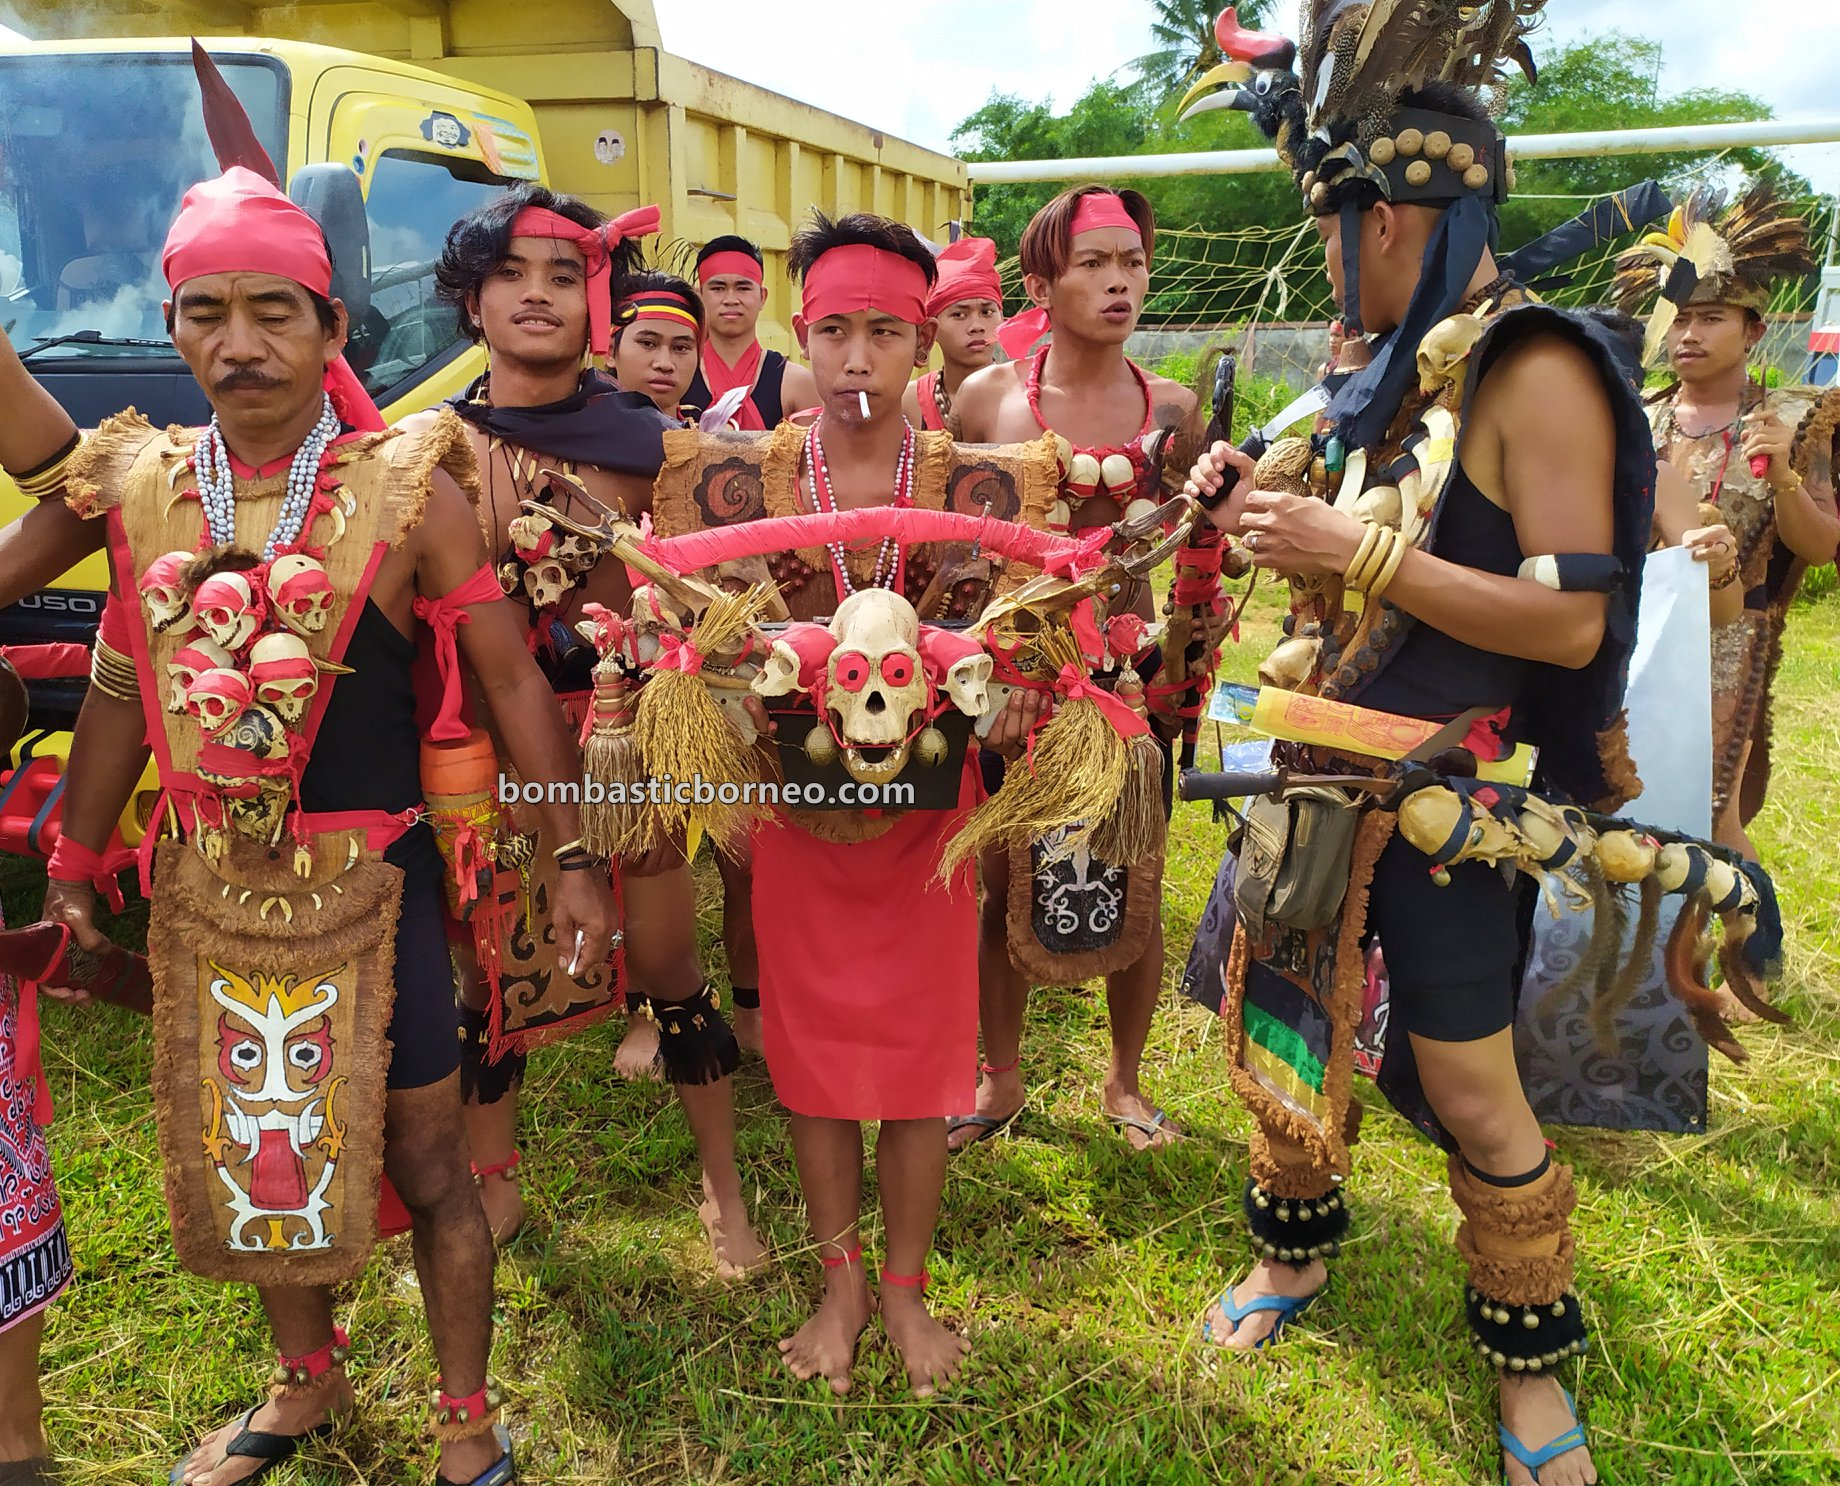 Festival Budaya Dayak, authentic, traditional, culture, event, native, tribal, Indonesia, Kalimantan Barat, Tangkitn raksasa, backpackers, Obyek wisata, Tourism, travel guide, Borneo,